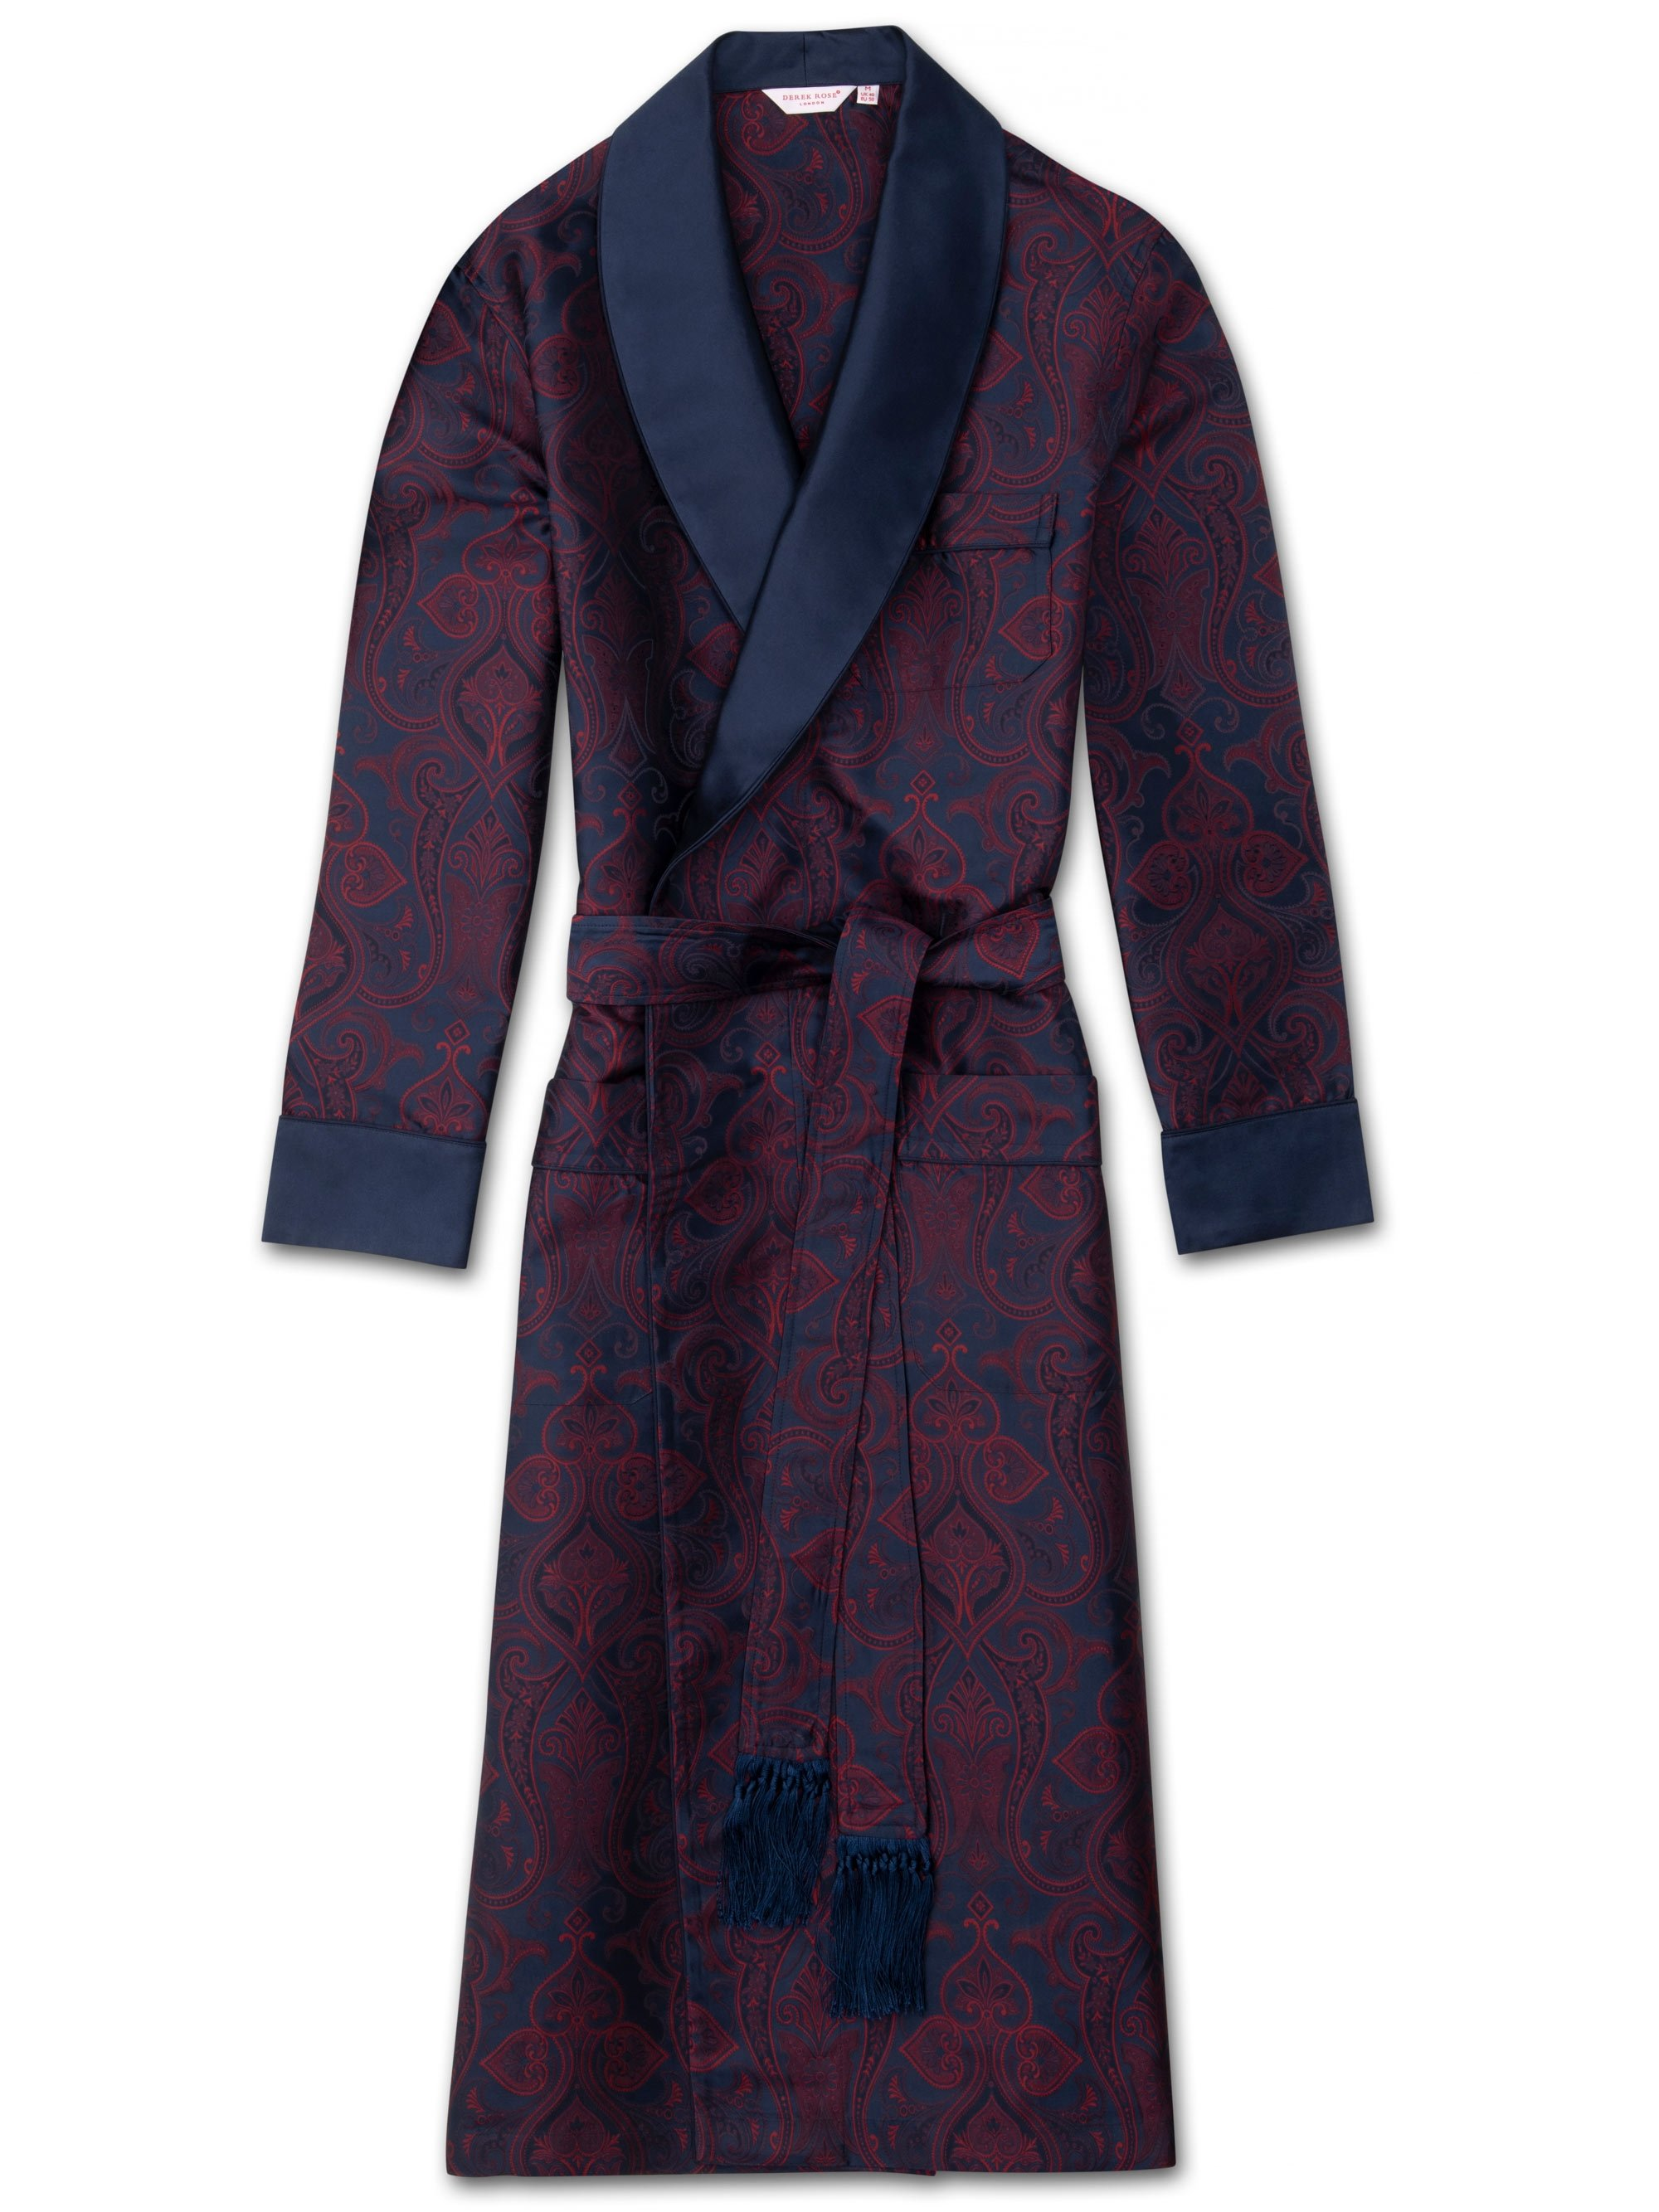 Men's Tasseled Belt Dressing Gown Verona 49 Pure Silk Jacquard Navy